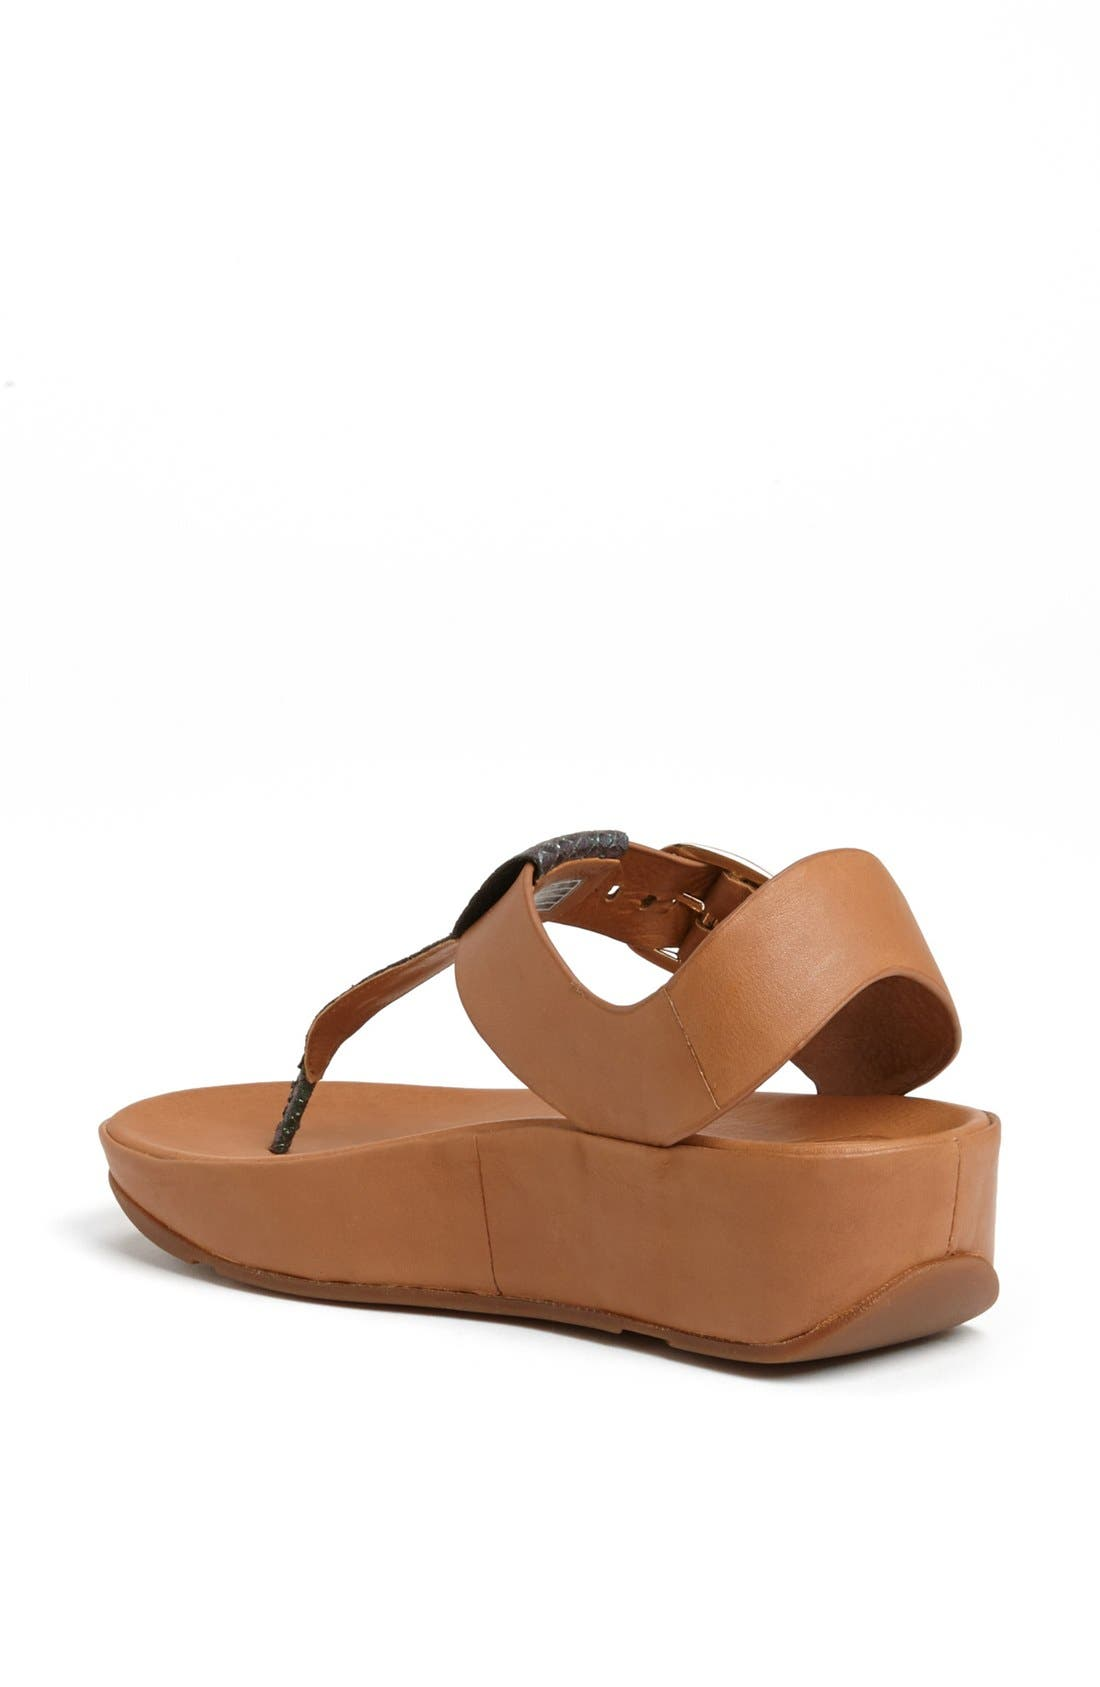 Alternate Image 2  - FitFlop 'Tia™' Leather Sandal